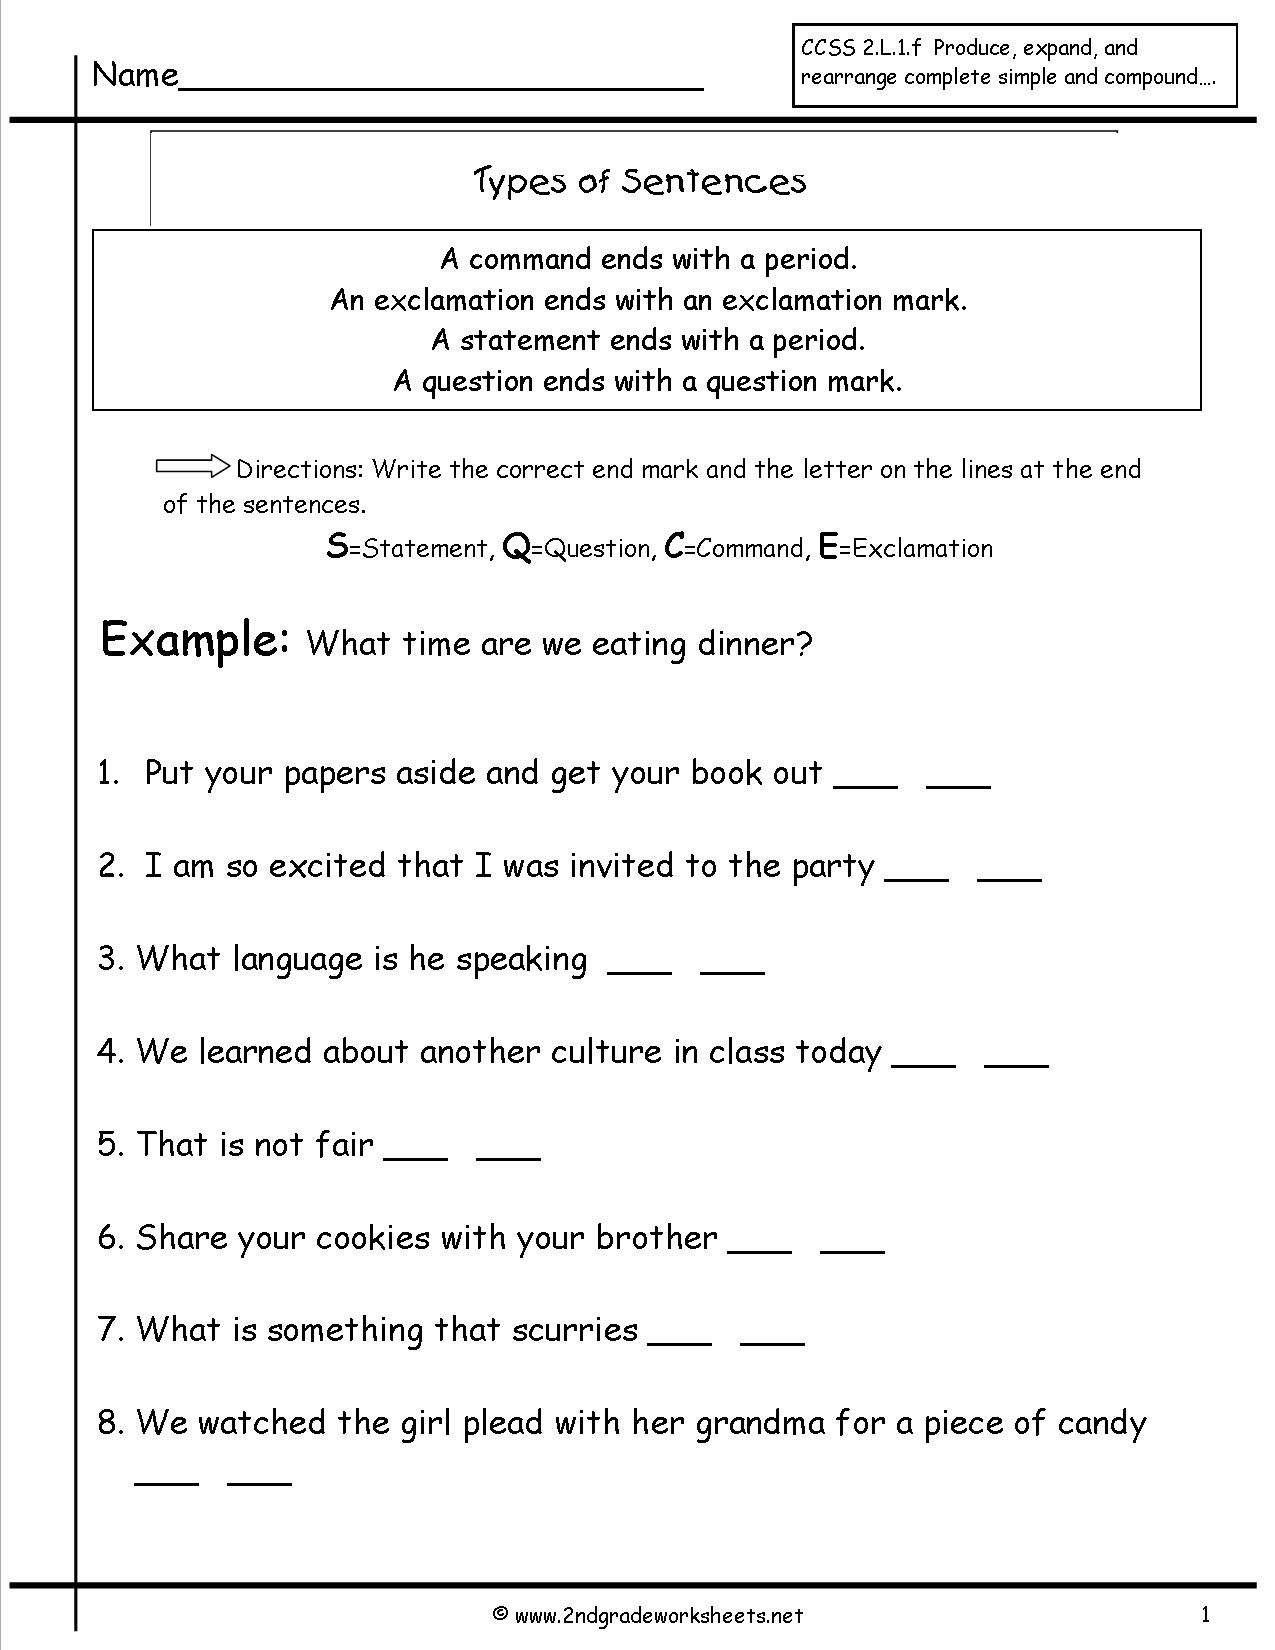 Topic Sentence Worksheets 4th Grade Second Grade Sentences Worksheets Ccss 4th Sentence